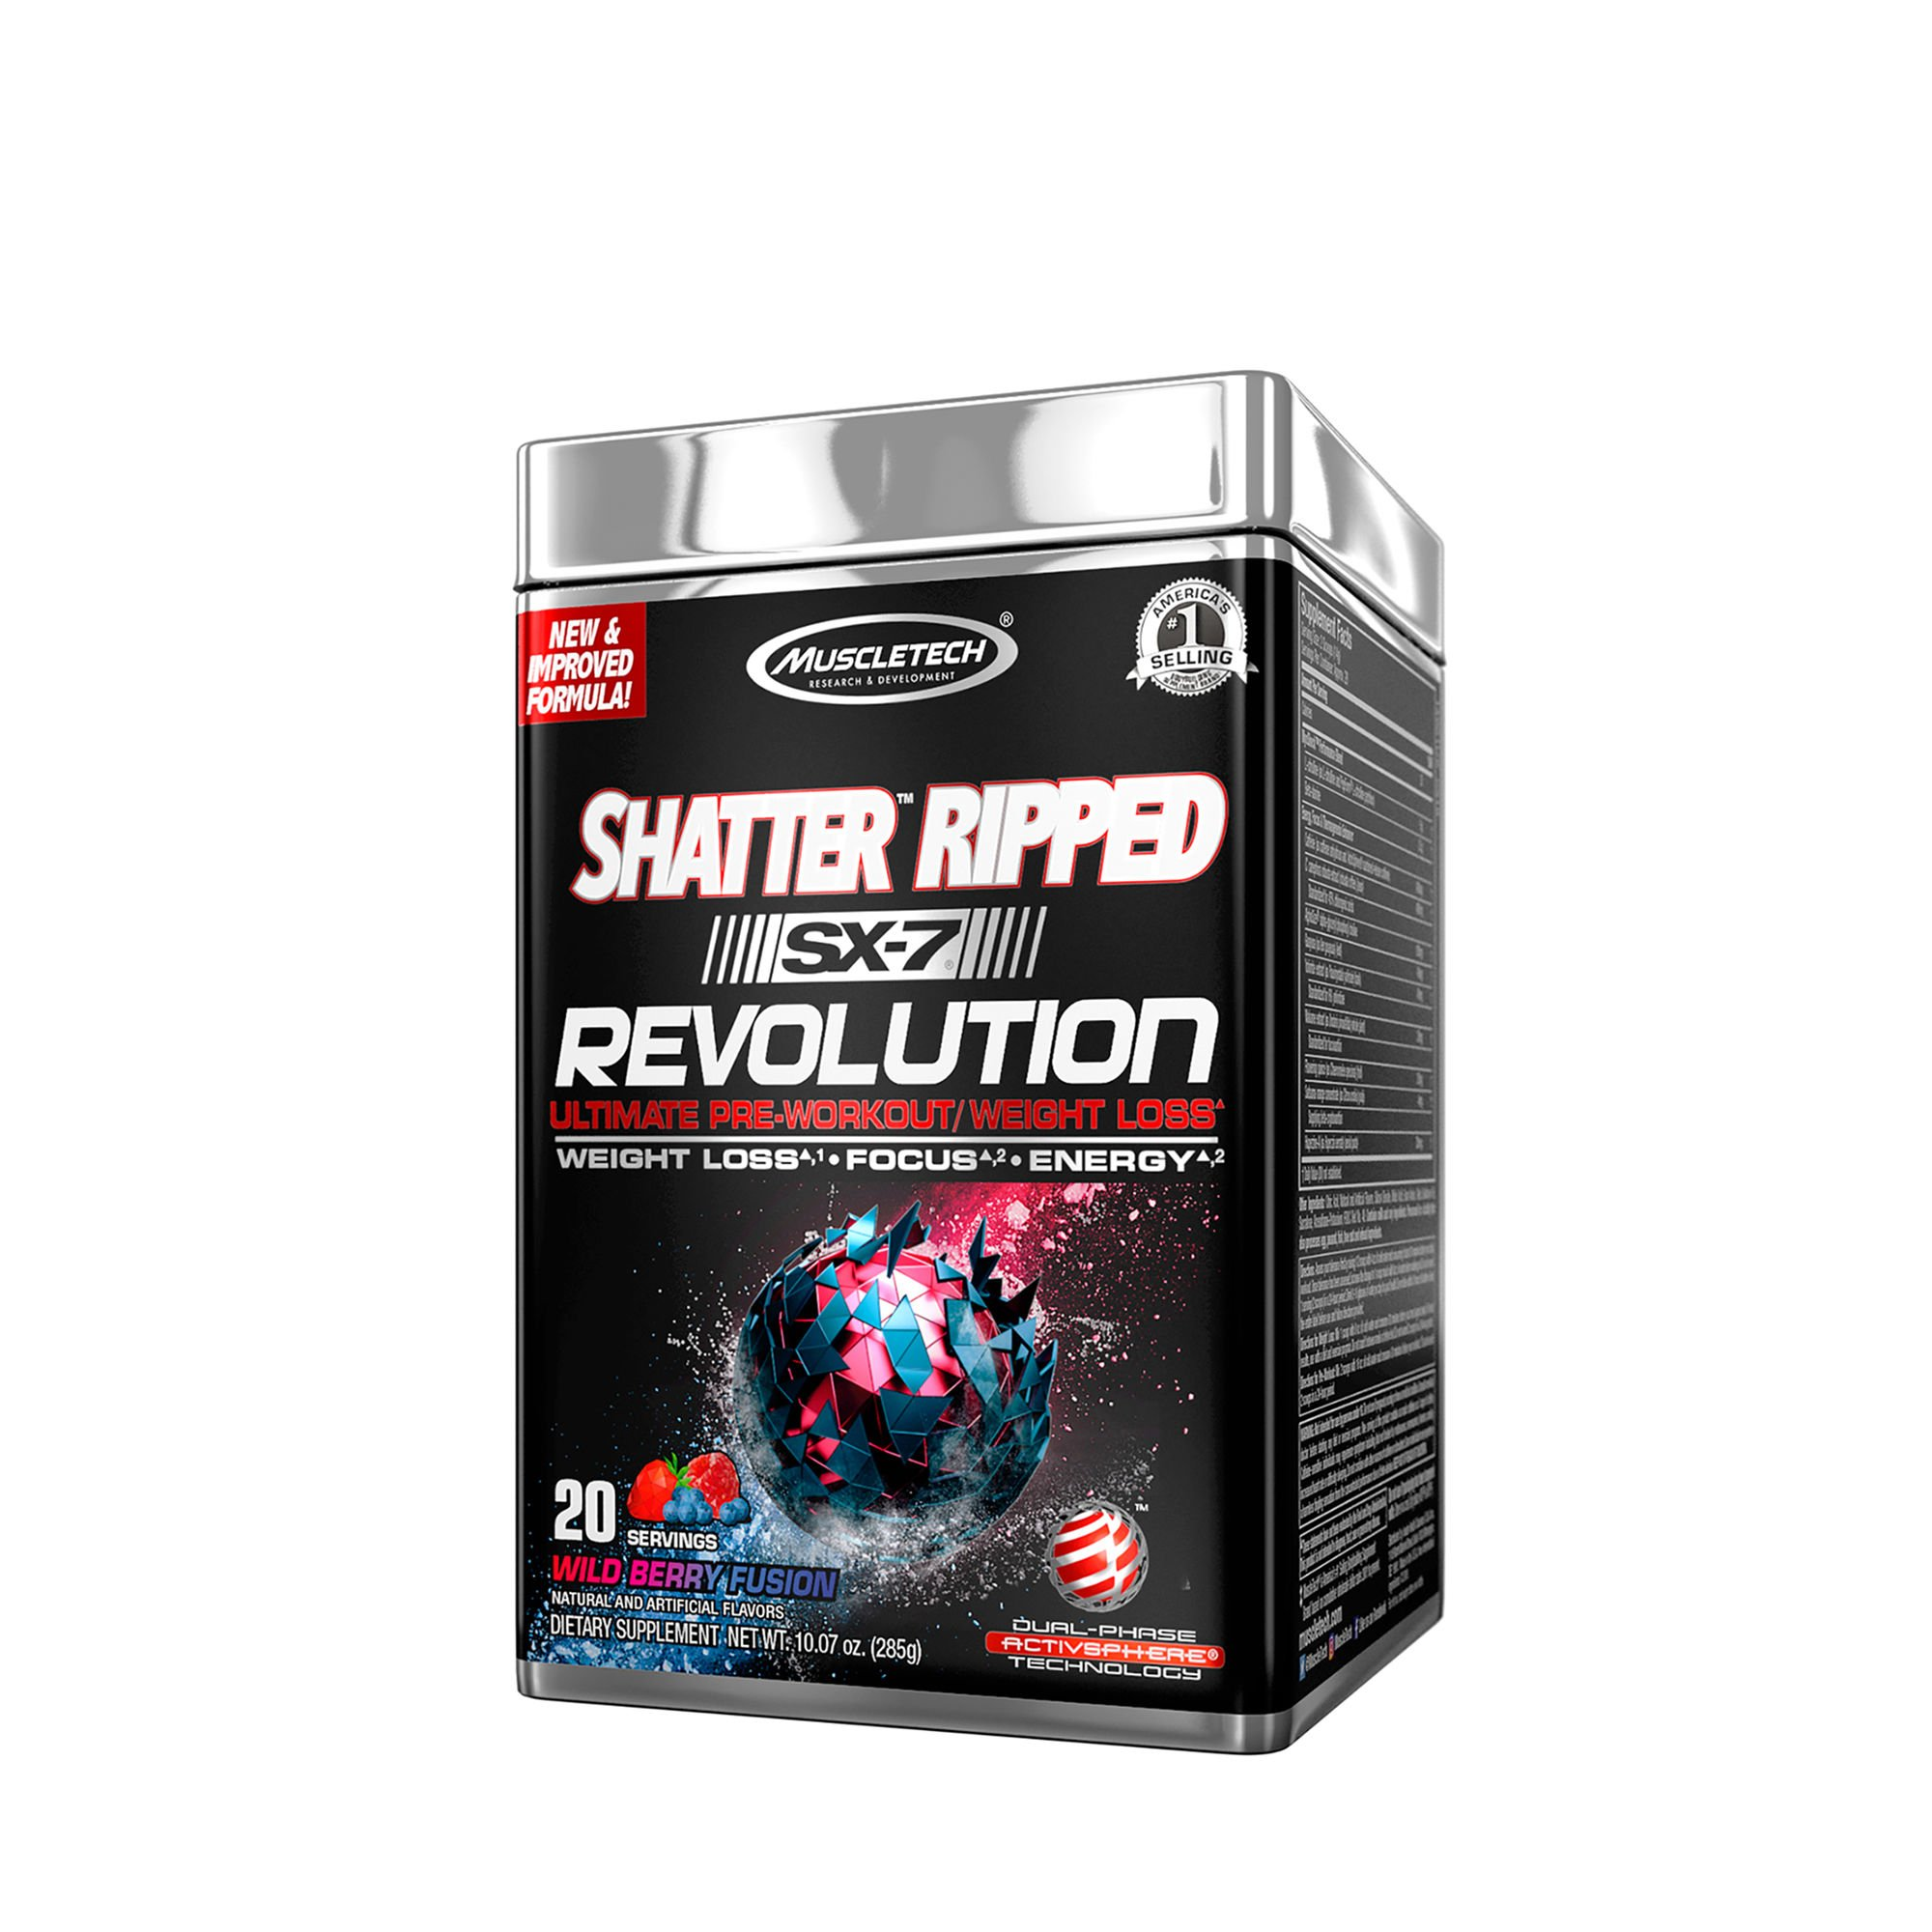 MuscleTech Shatter Ripped SX-7 Revolution - Wild Berry Fusion by MuscleTech (Image #1)